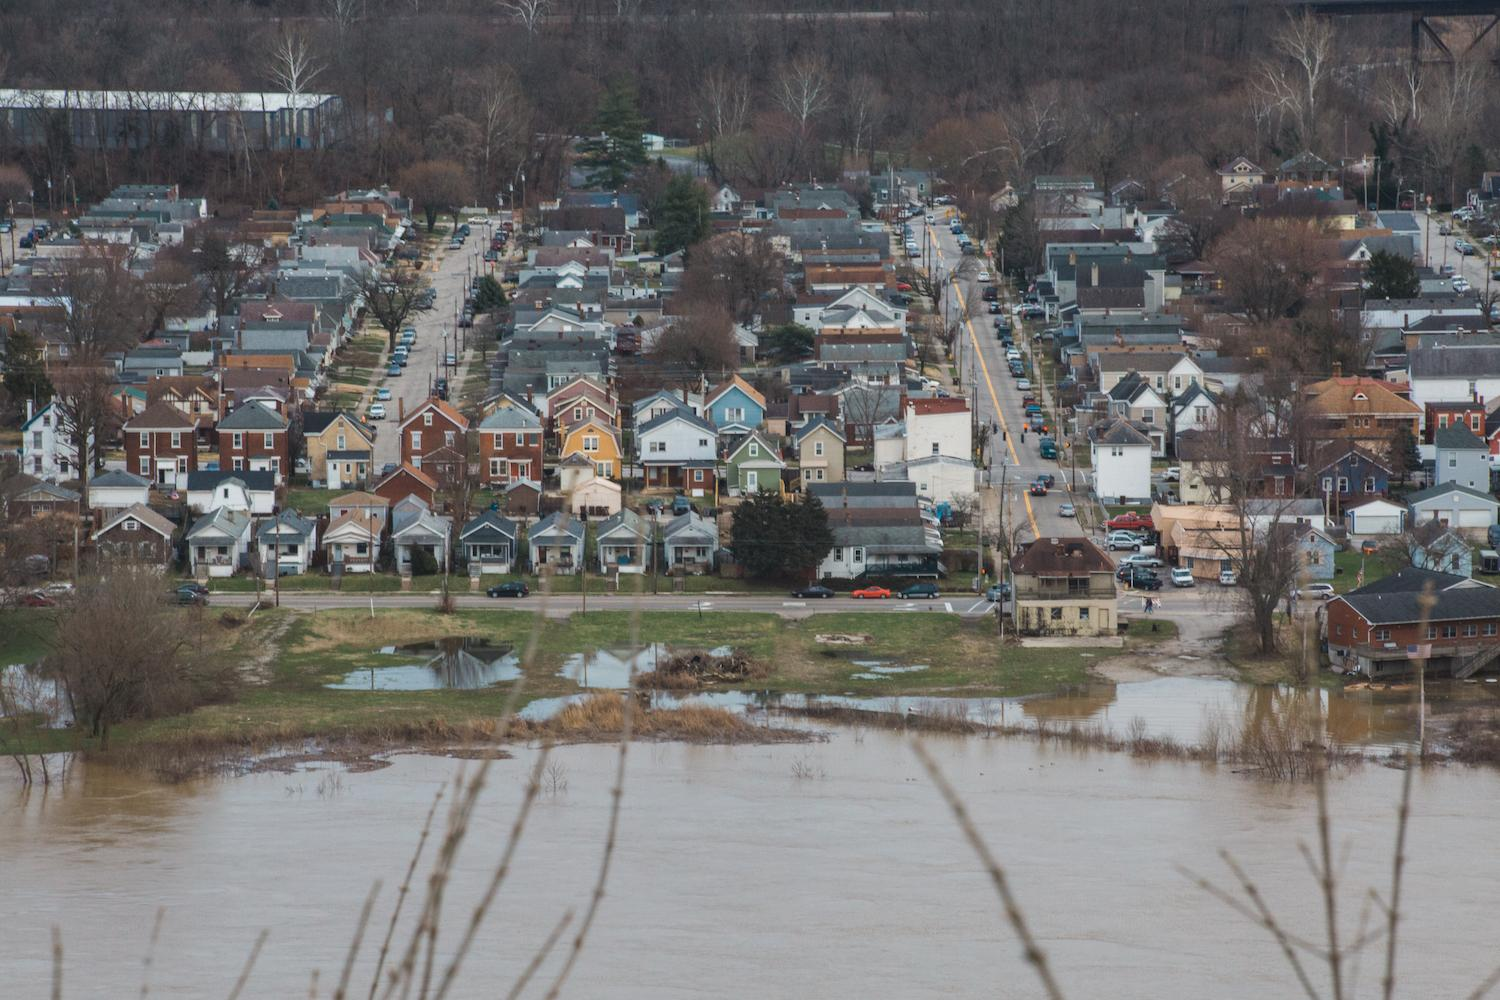 On Sunday, February 25, the Ohio River Flood of 2018 crested just above 60 feet, which is eight feet above the 52-foot flood stage. This is the biggest flood the city has seen since 1997. Smale Park is mostly underwater as are Sawyer Point and Yeatman's Cove. / Image: Catie Viox // Published: 2.26.18